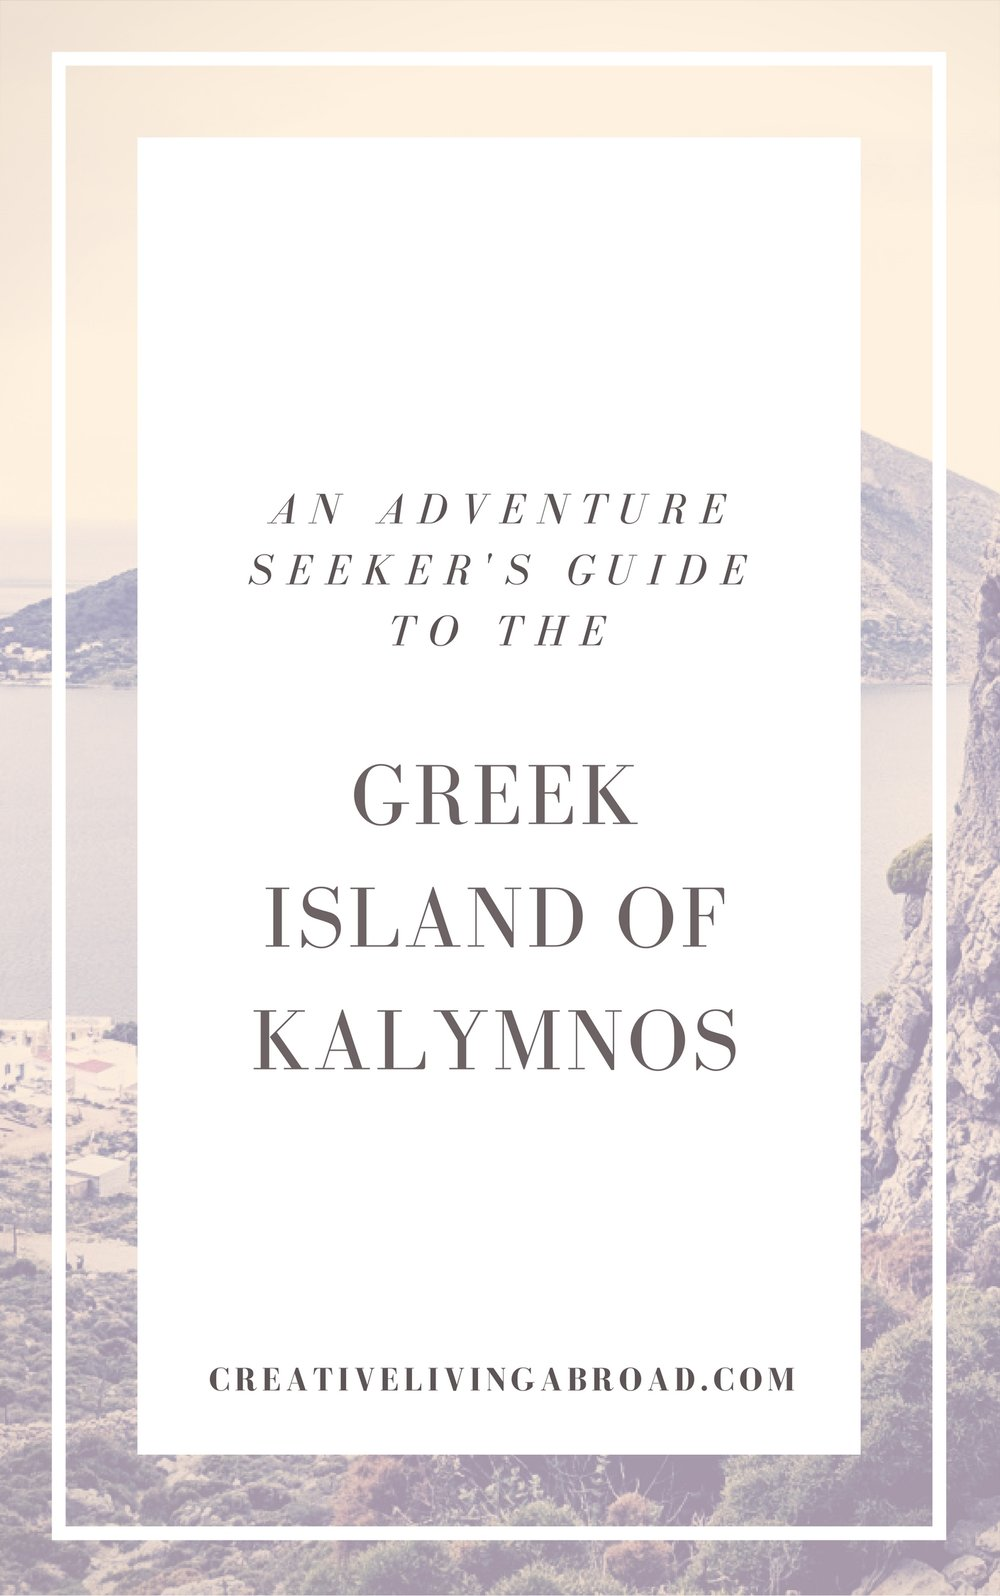 adventure climbing guide to the greek island of kalymnos